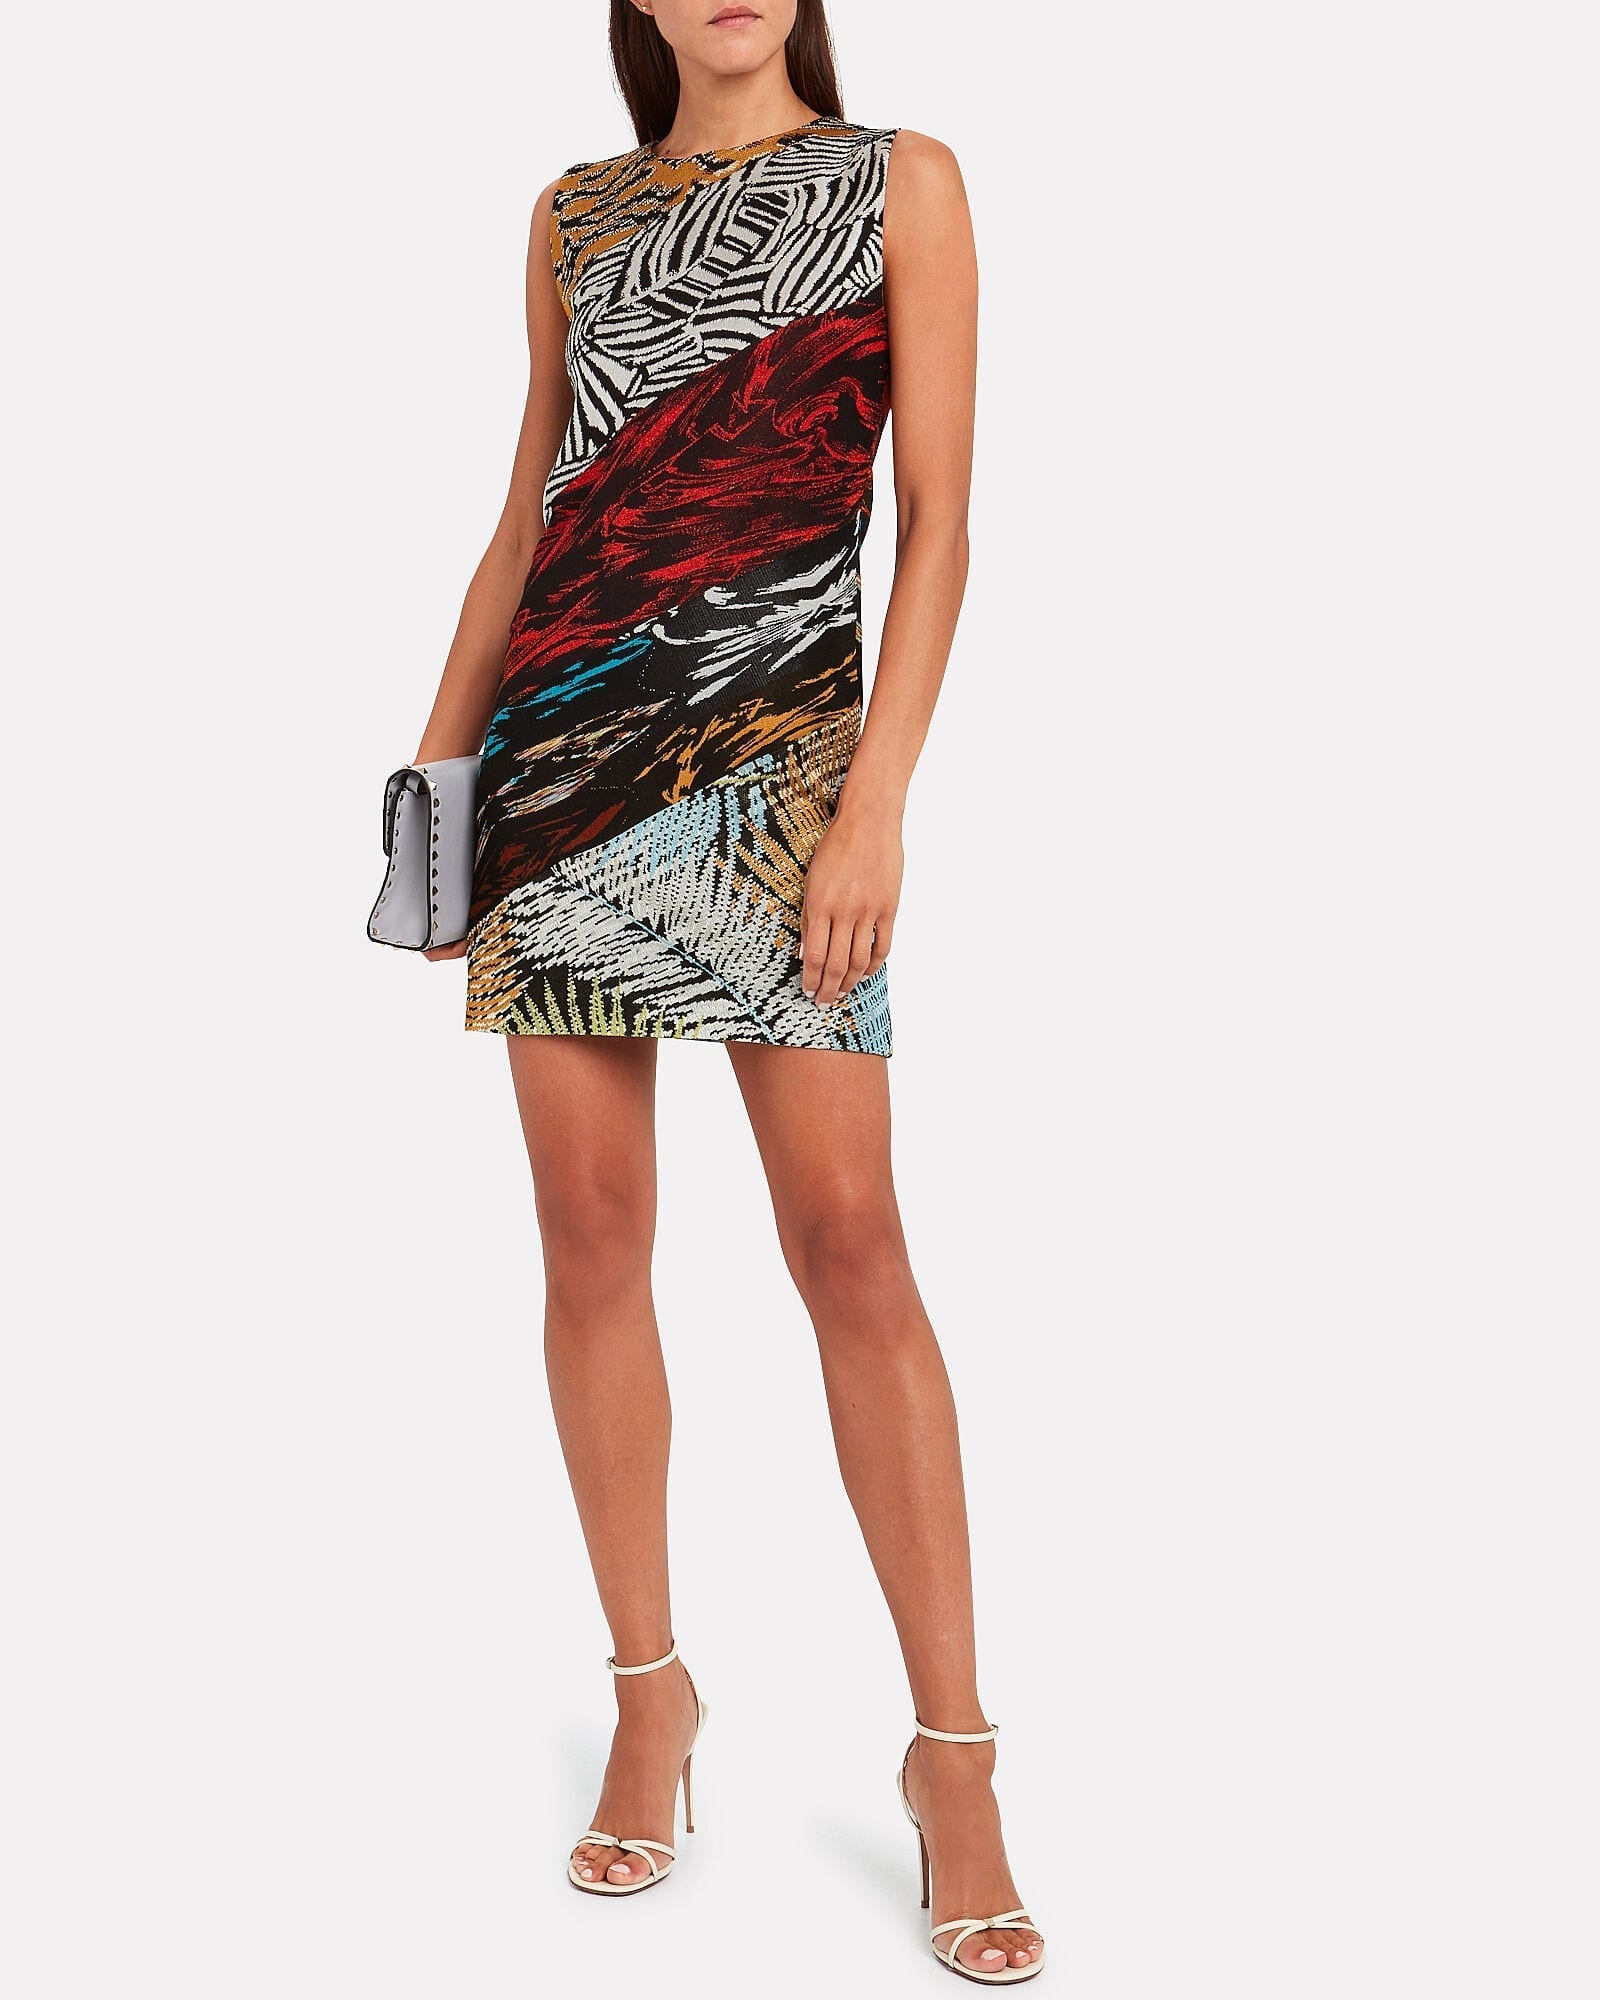 MISSONI Mixed Knit Jacquard Shift Dress